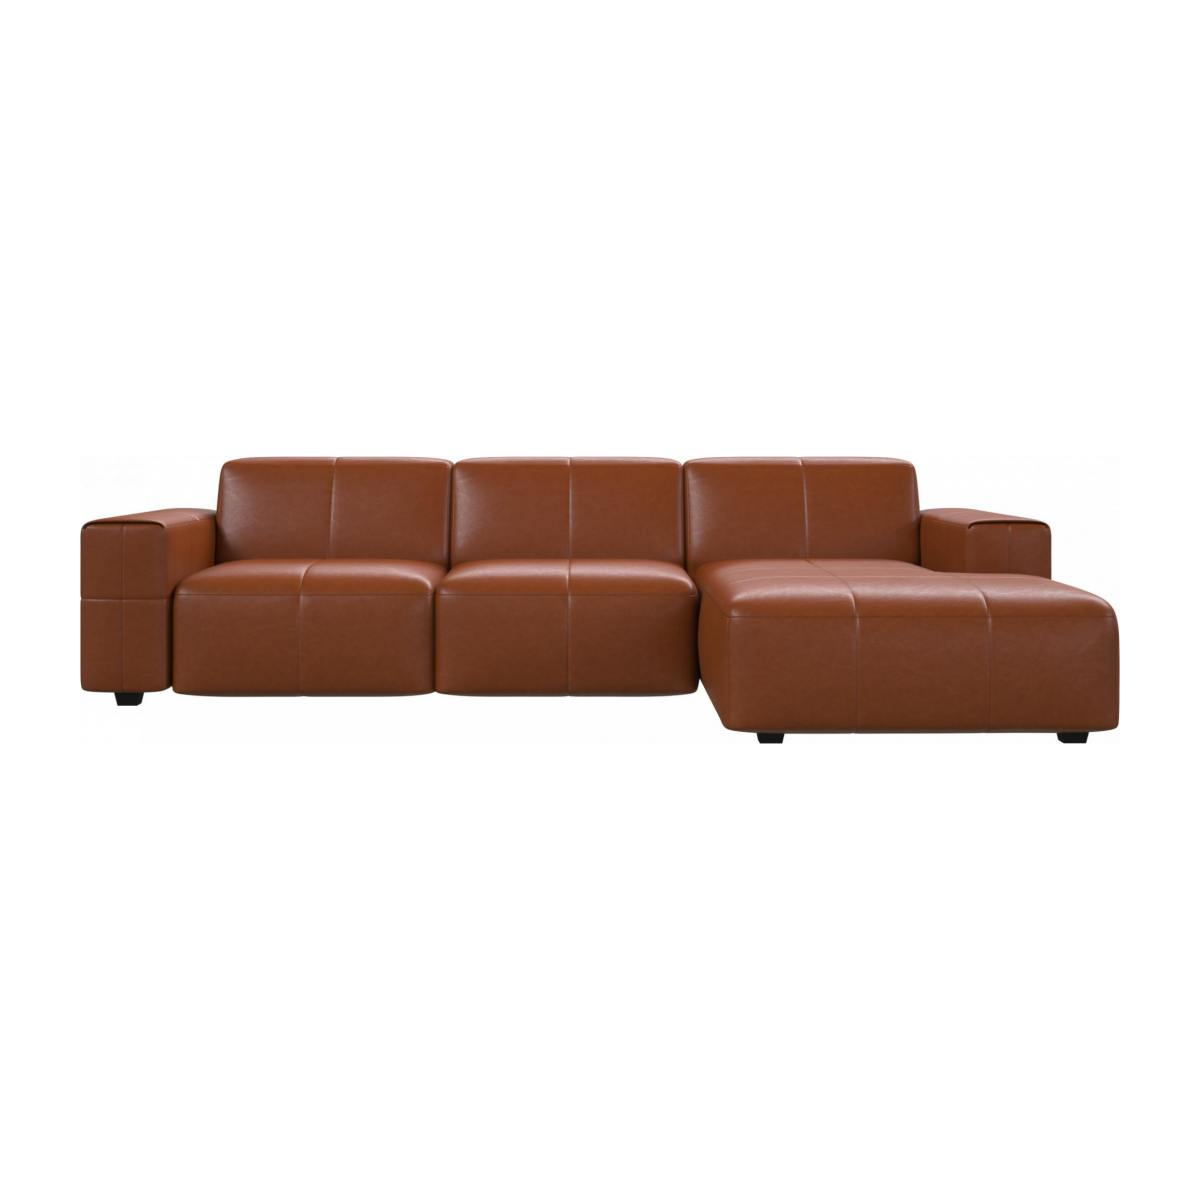 3 seater sofa with chaise longue on the right in Vintage aniline leather, old chestnut n°1